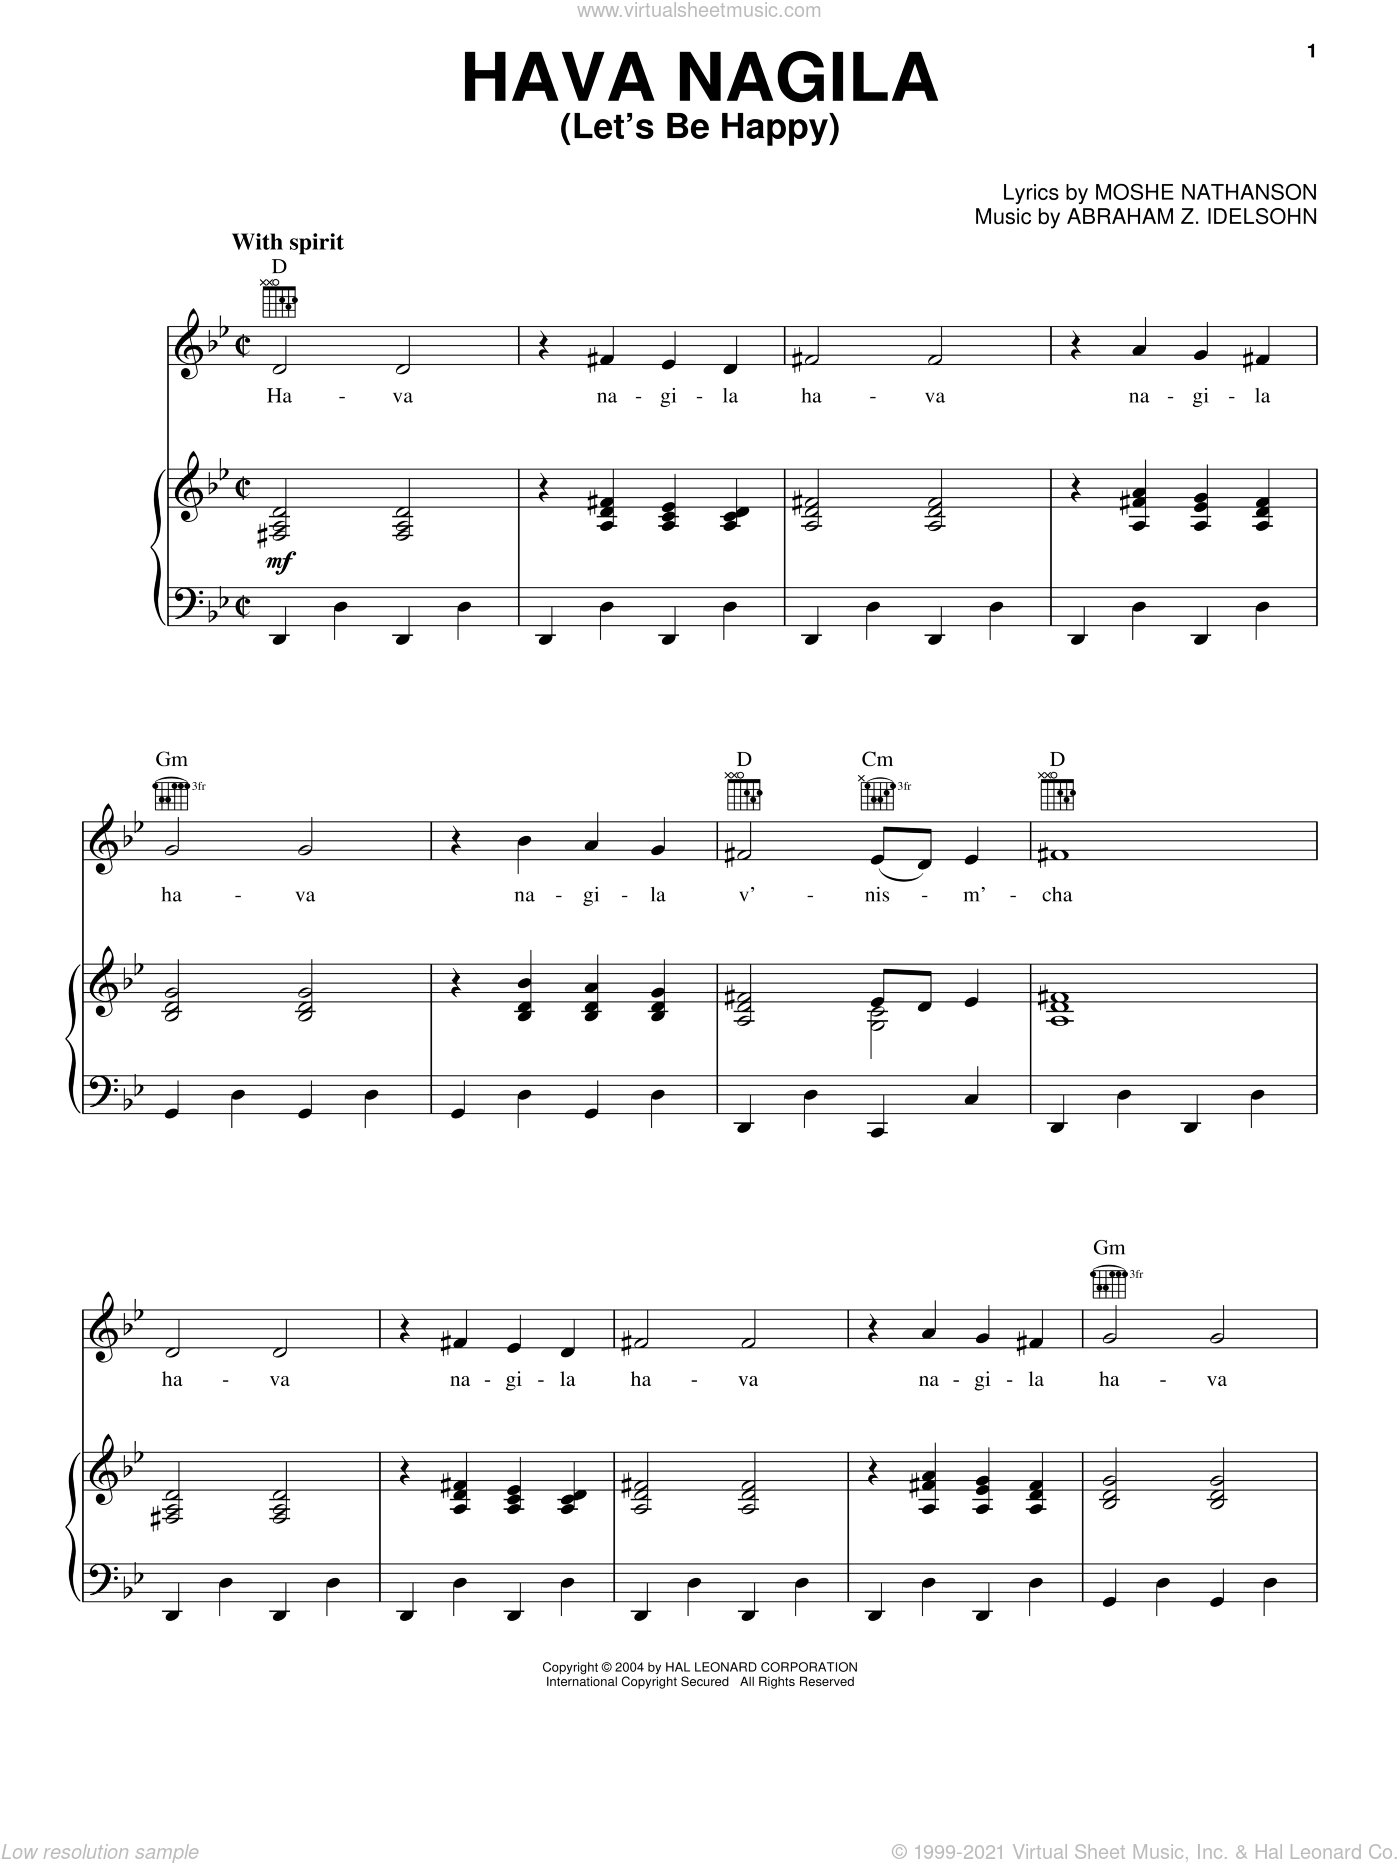 Hava Nagila (Let's Be Happy) sheet music for voice, piano or guitar by Abraham Z. Idelsohn